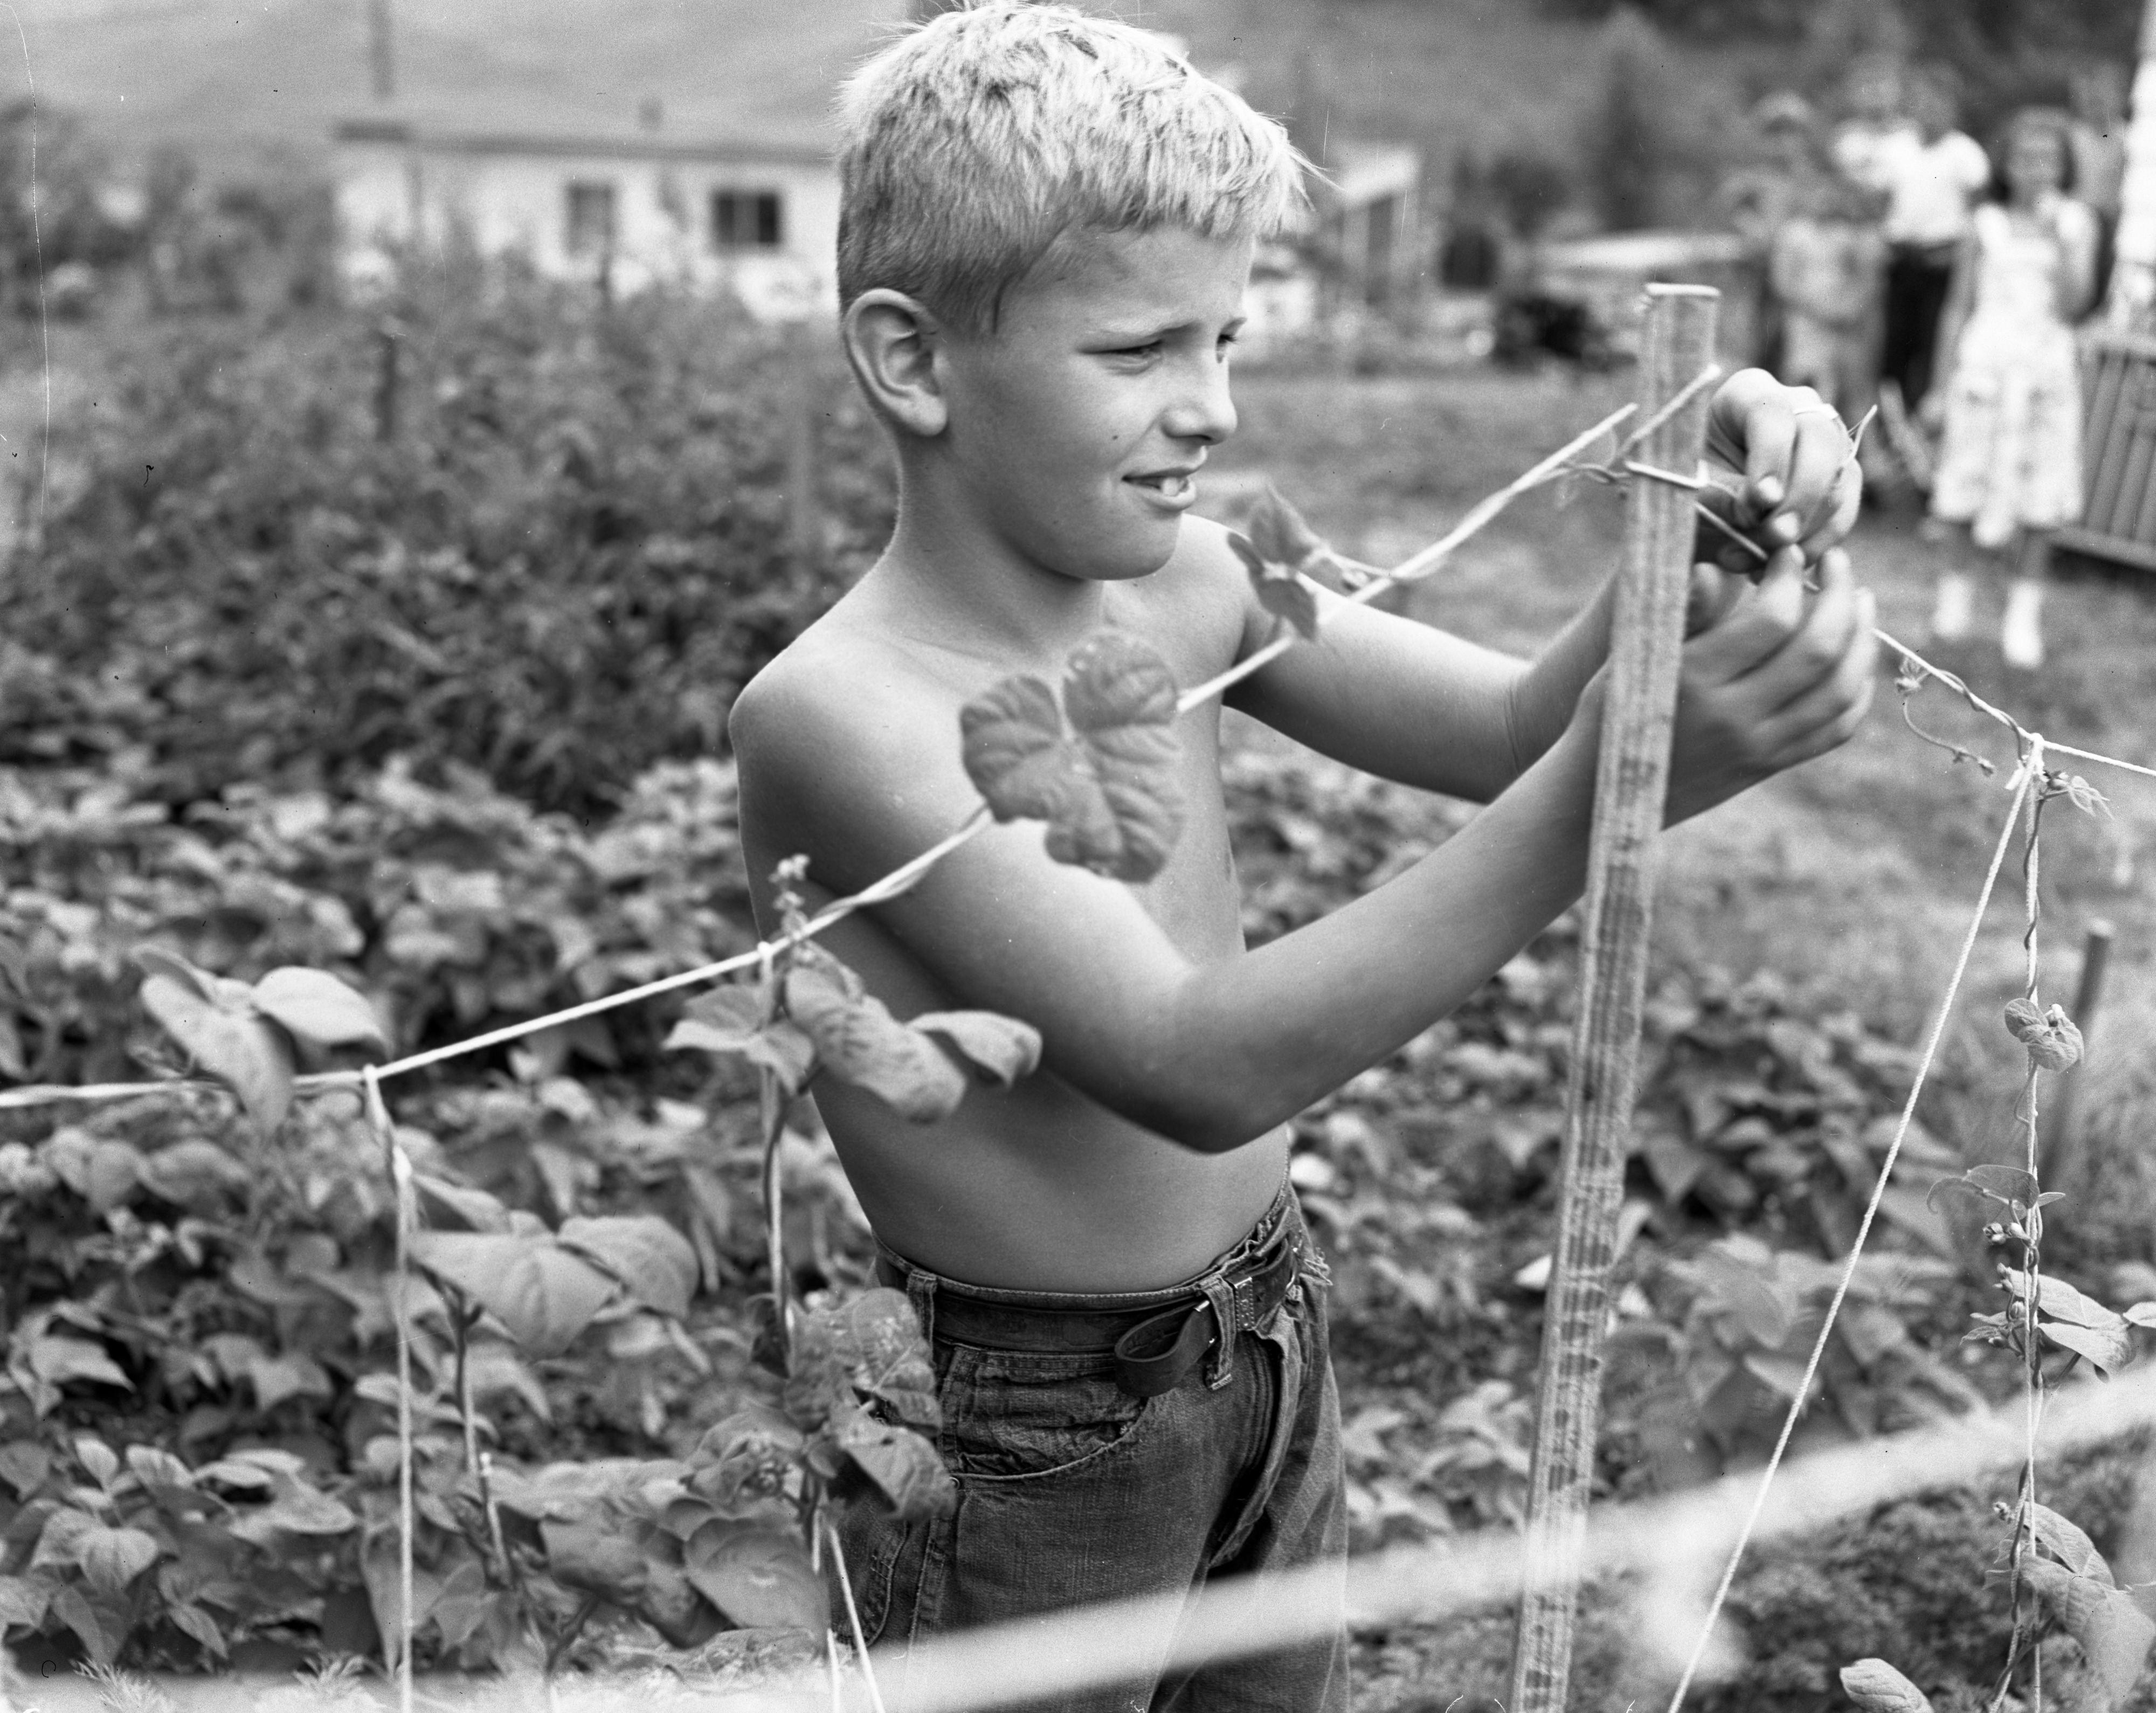 Jack Bailey Preparing For Junior Garden Festival, July 1952 image